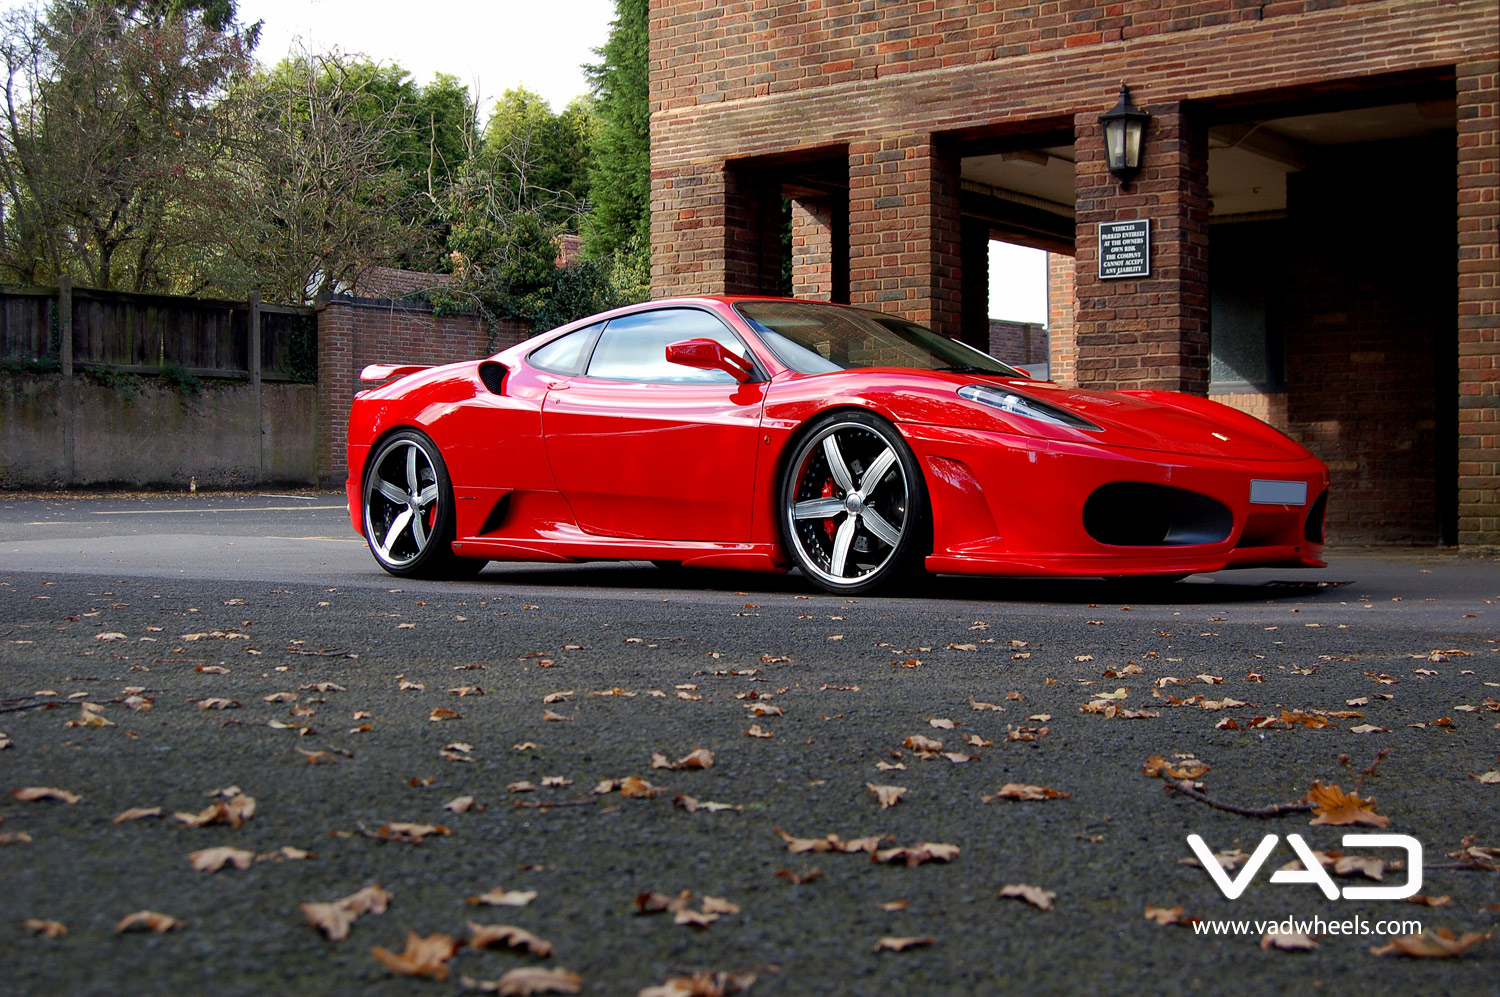 Ferrari F430 Fitted With Trafficstar STR Polished and With Black Detail